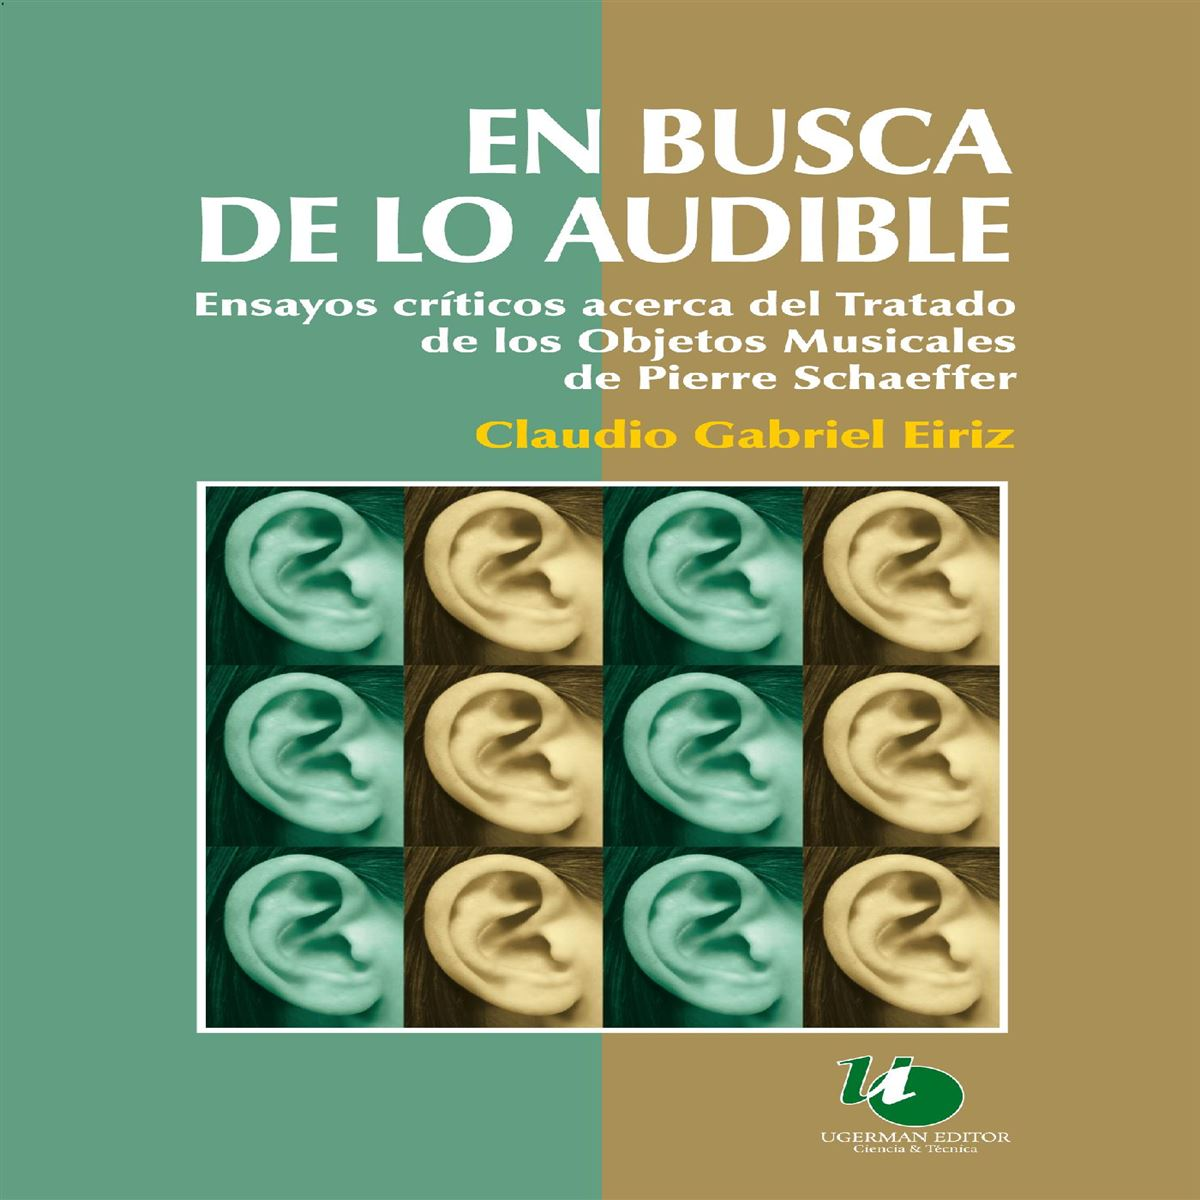 En busca de lo audible